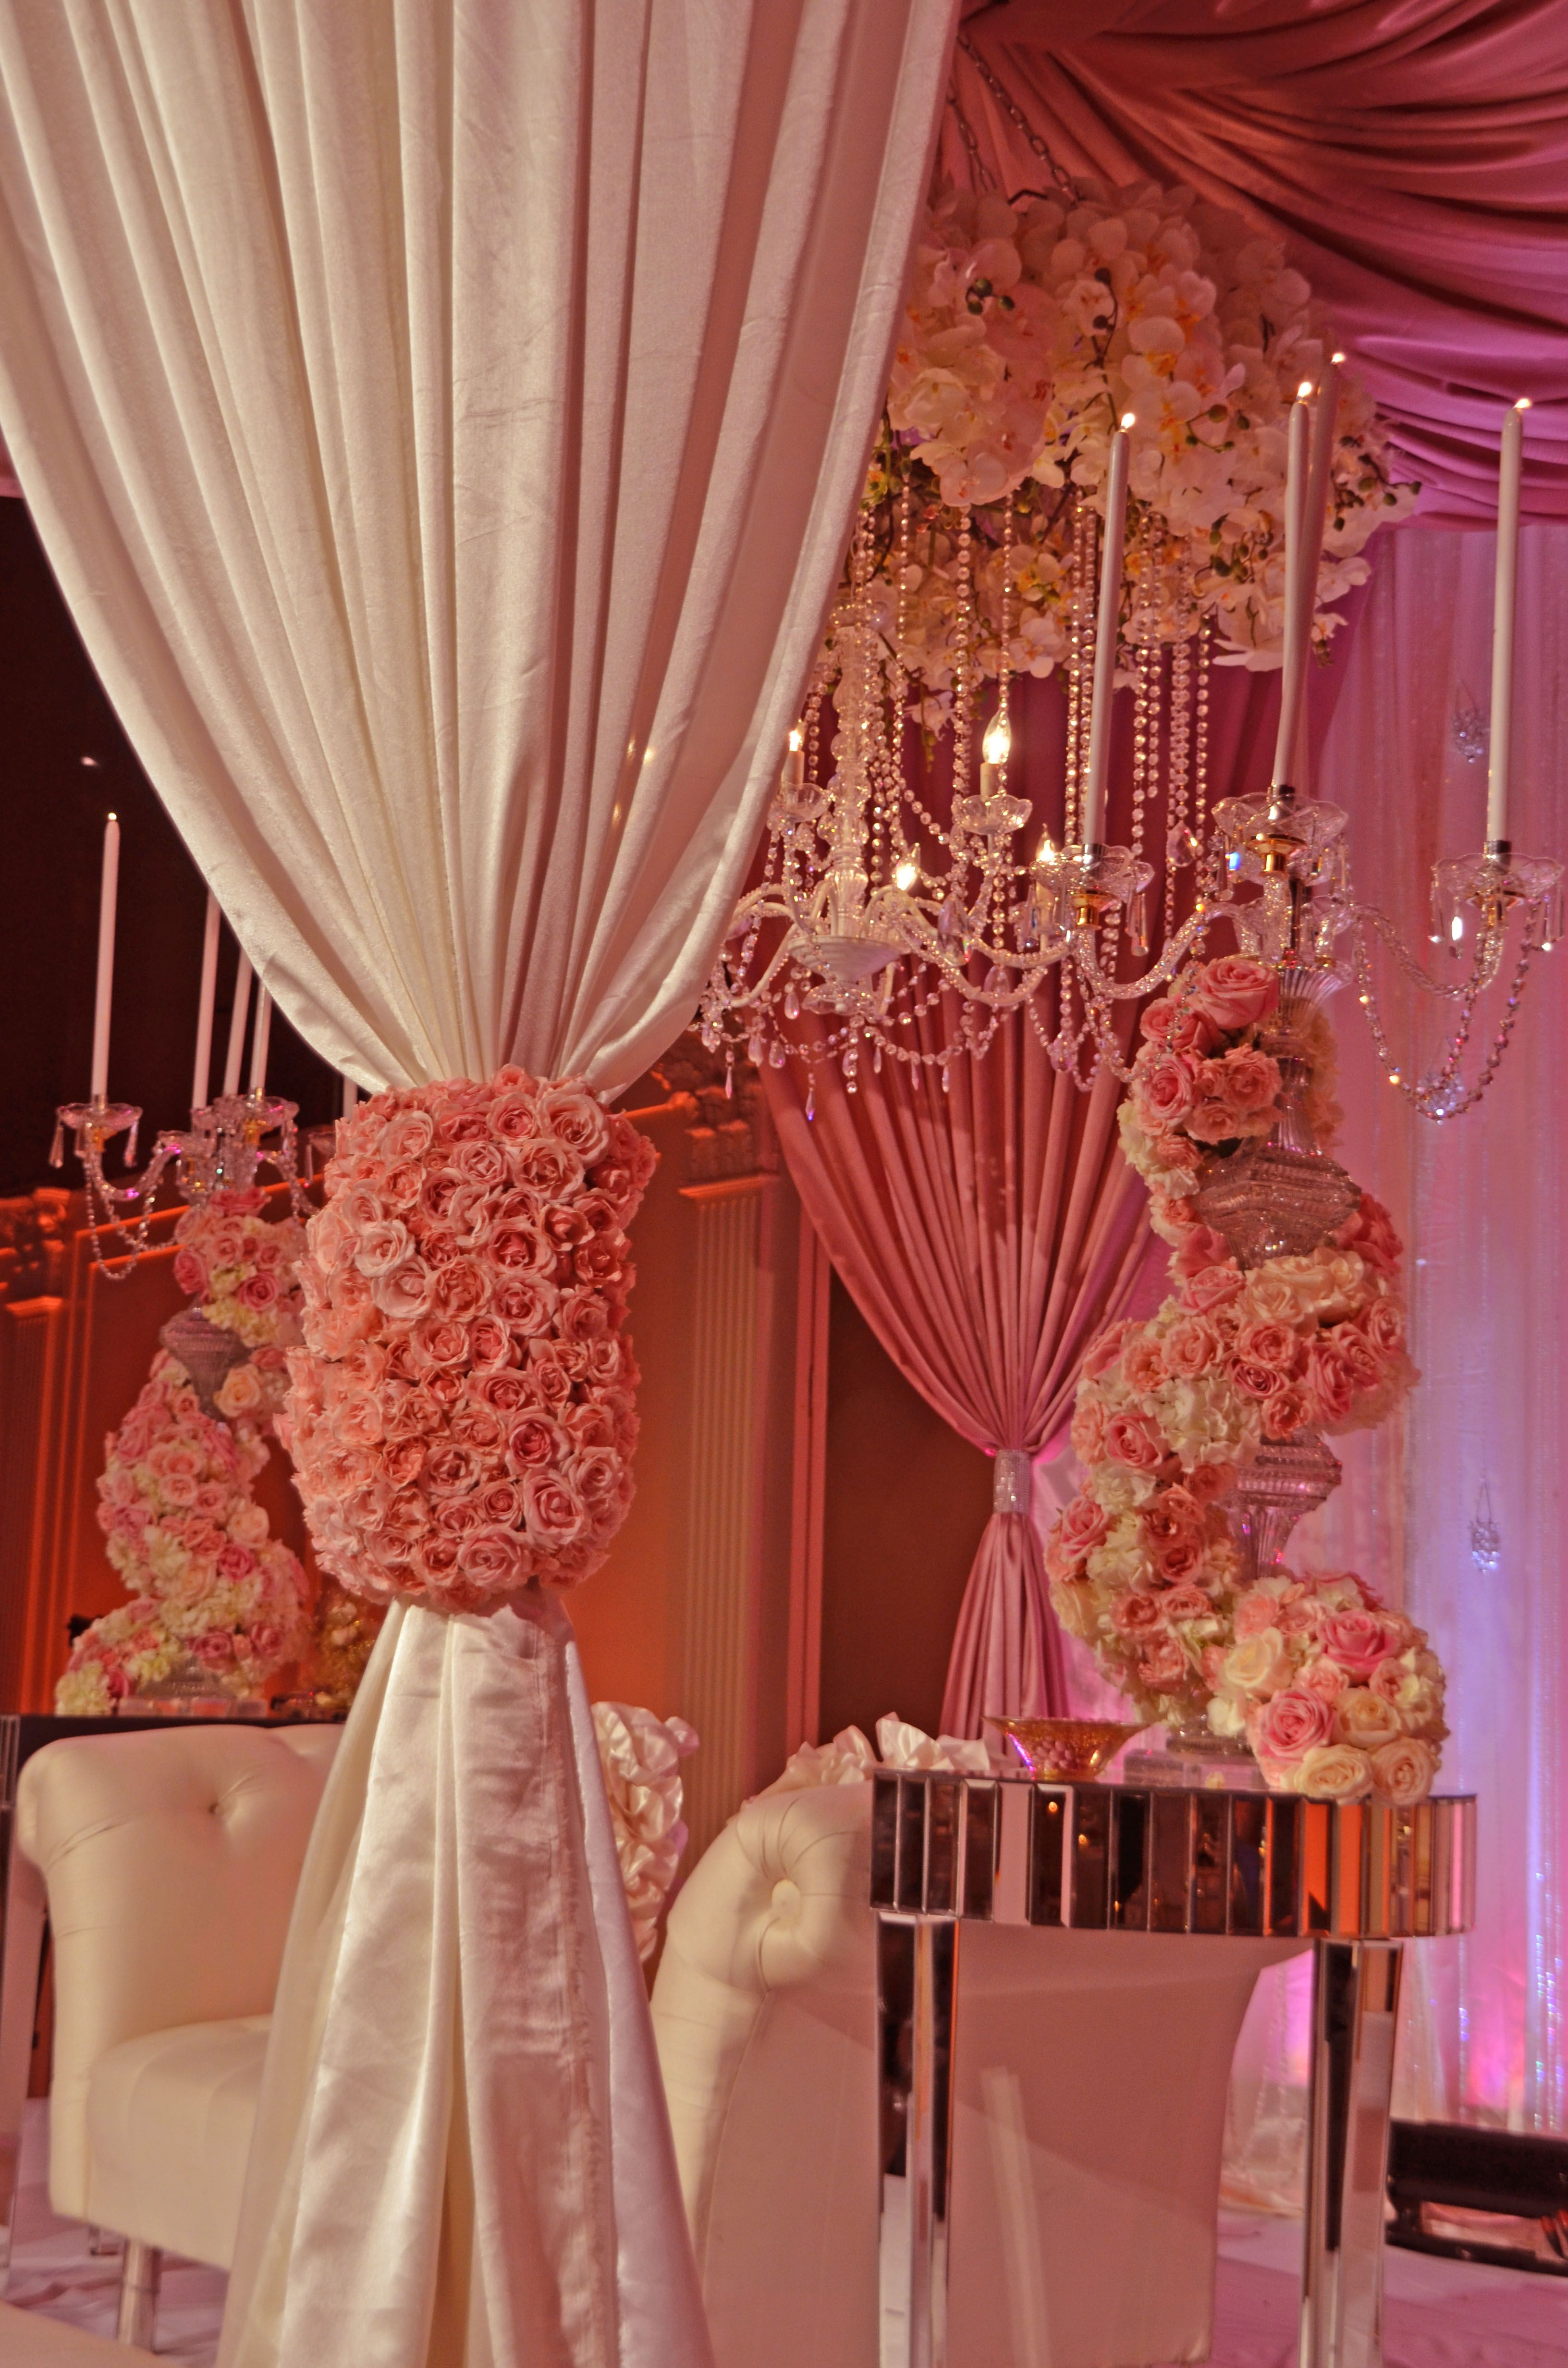 Living Room Design House Decor 1000 images about decor on pinterest backdrops sweetheart table and receptions